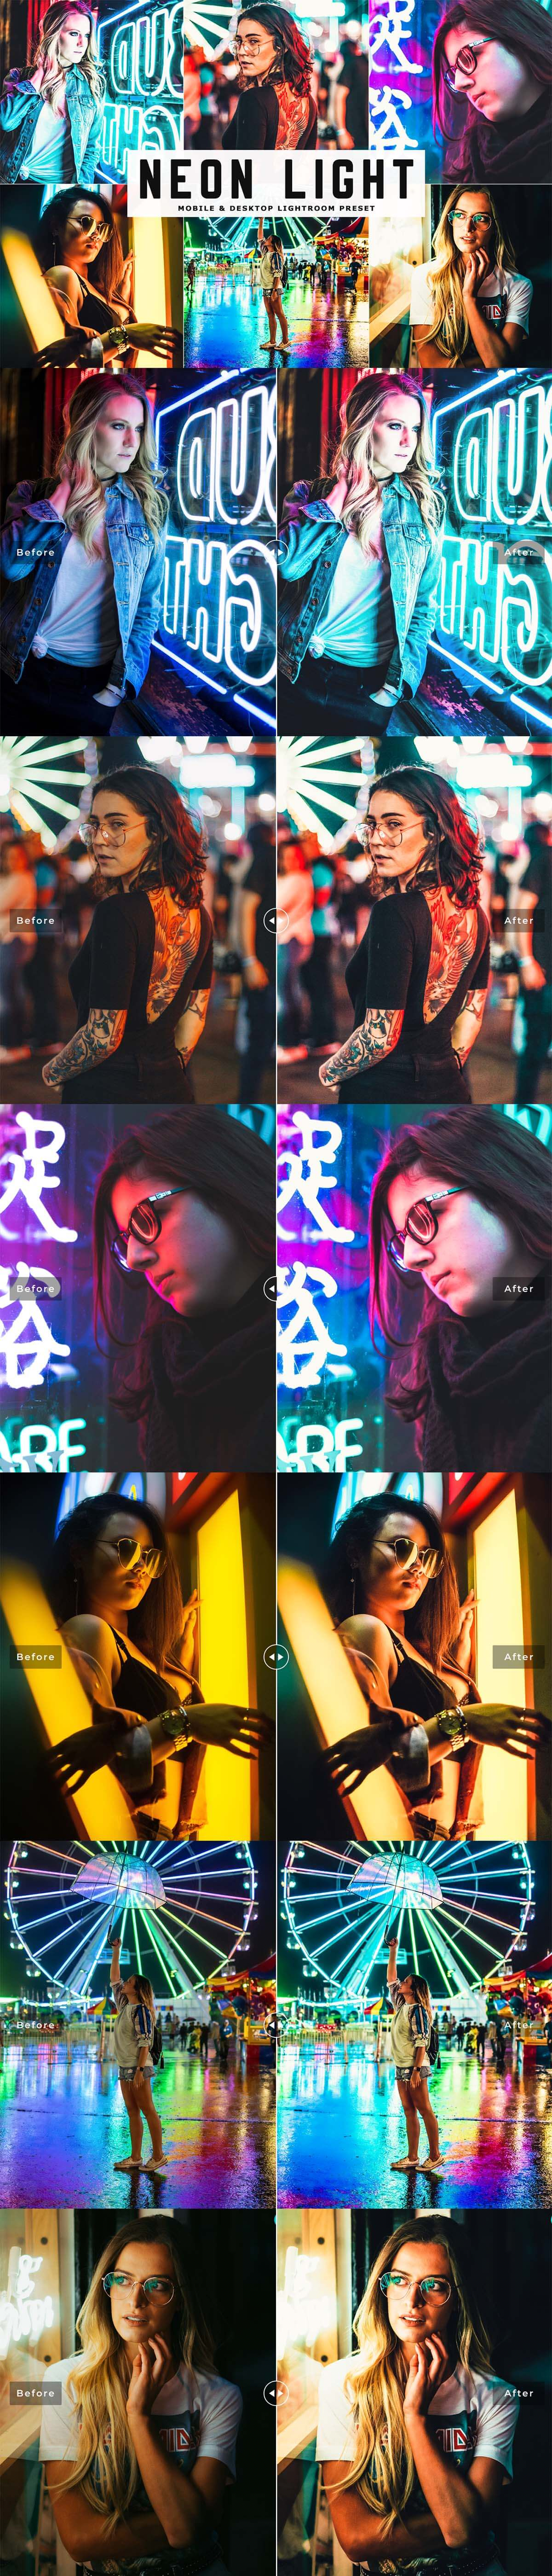 Free Neon Light Lightroom Preset